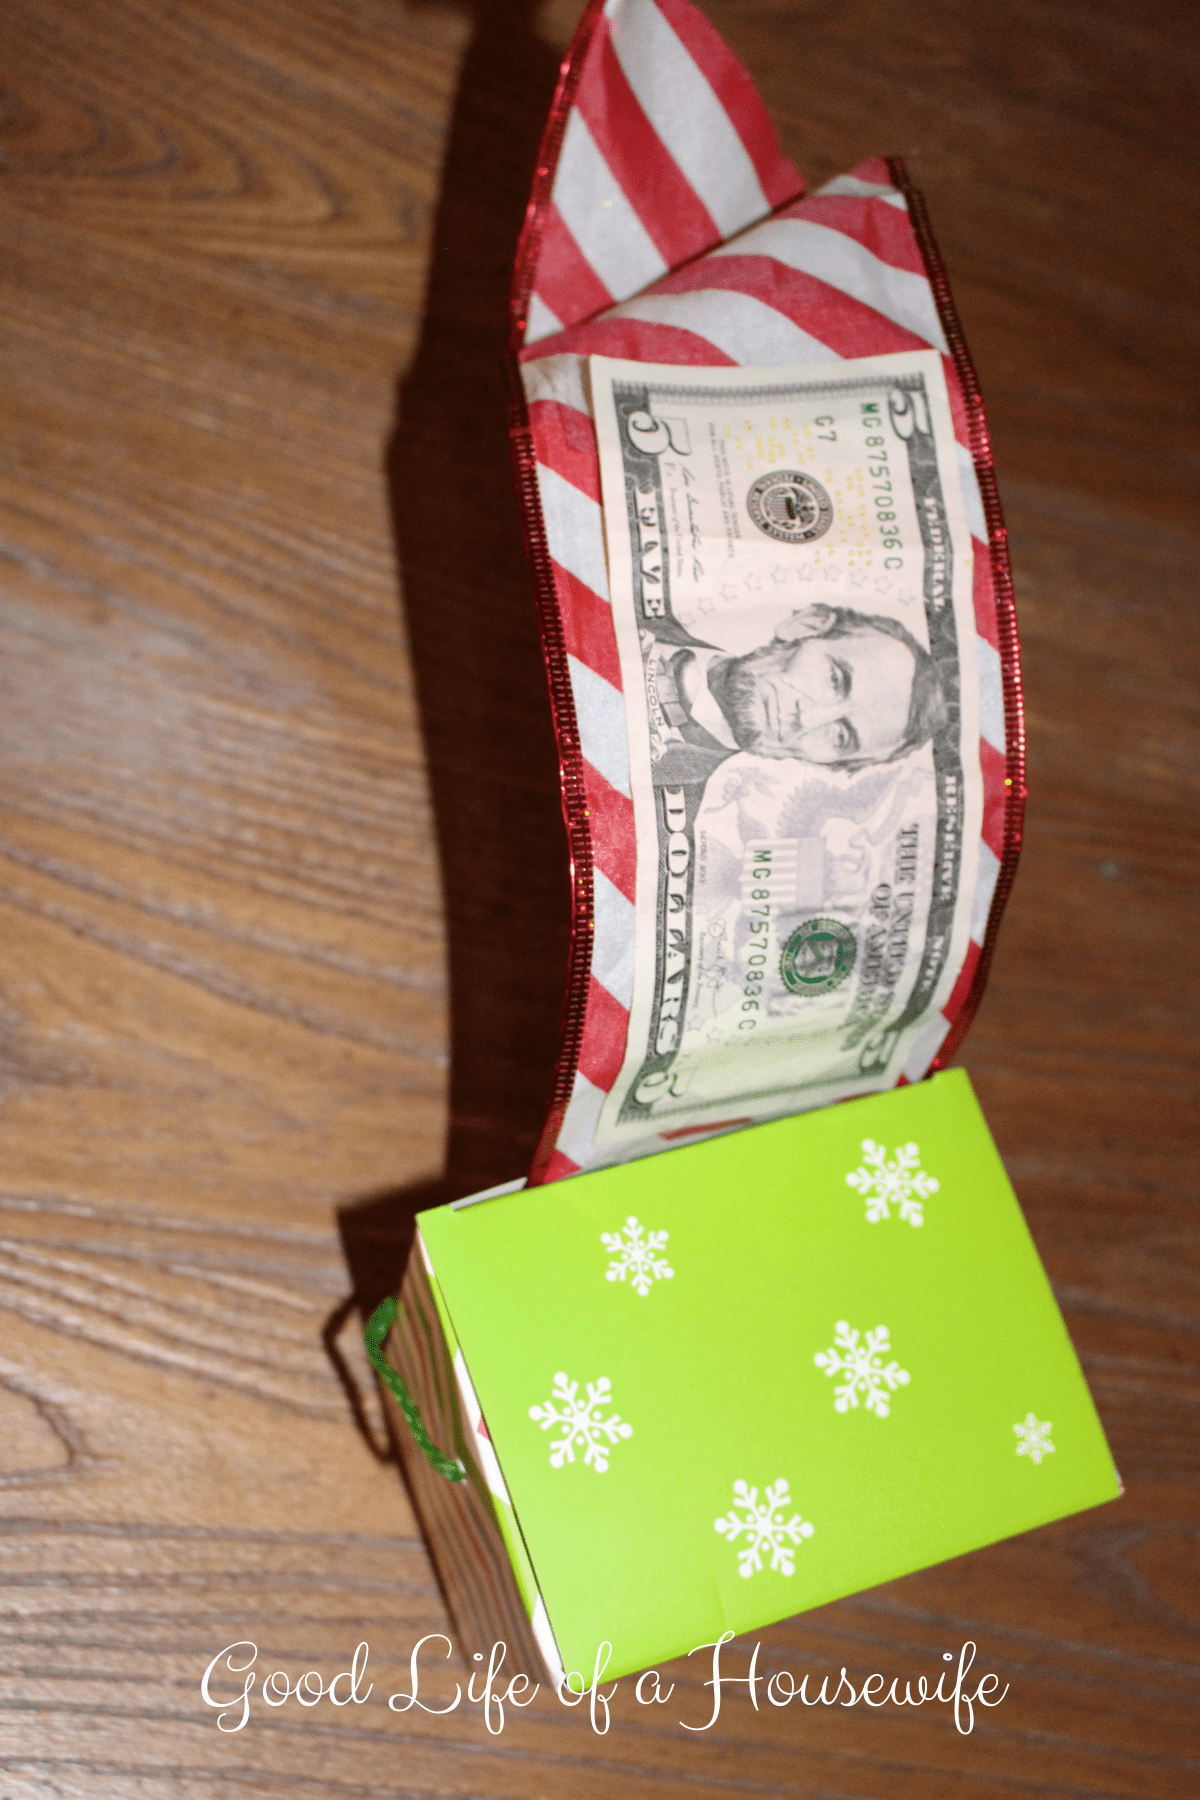 Ideas for Cash Gifts at Christmas - Good life of a housewife